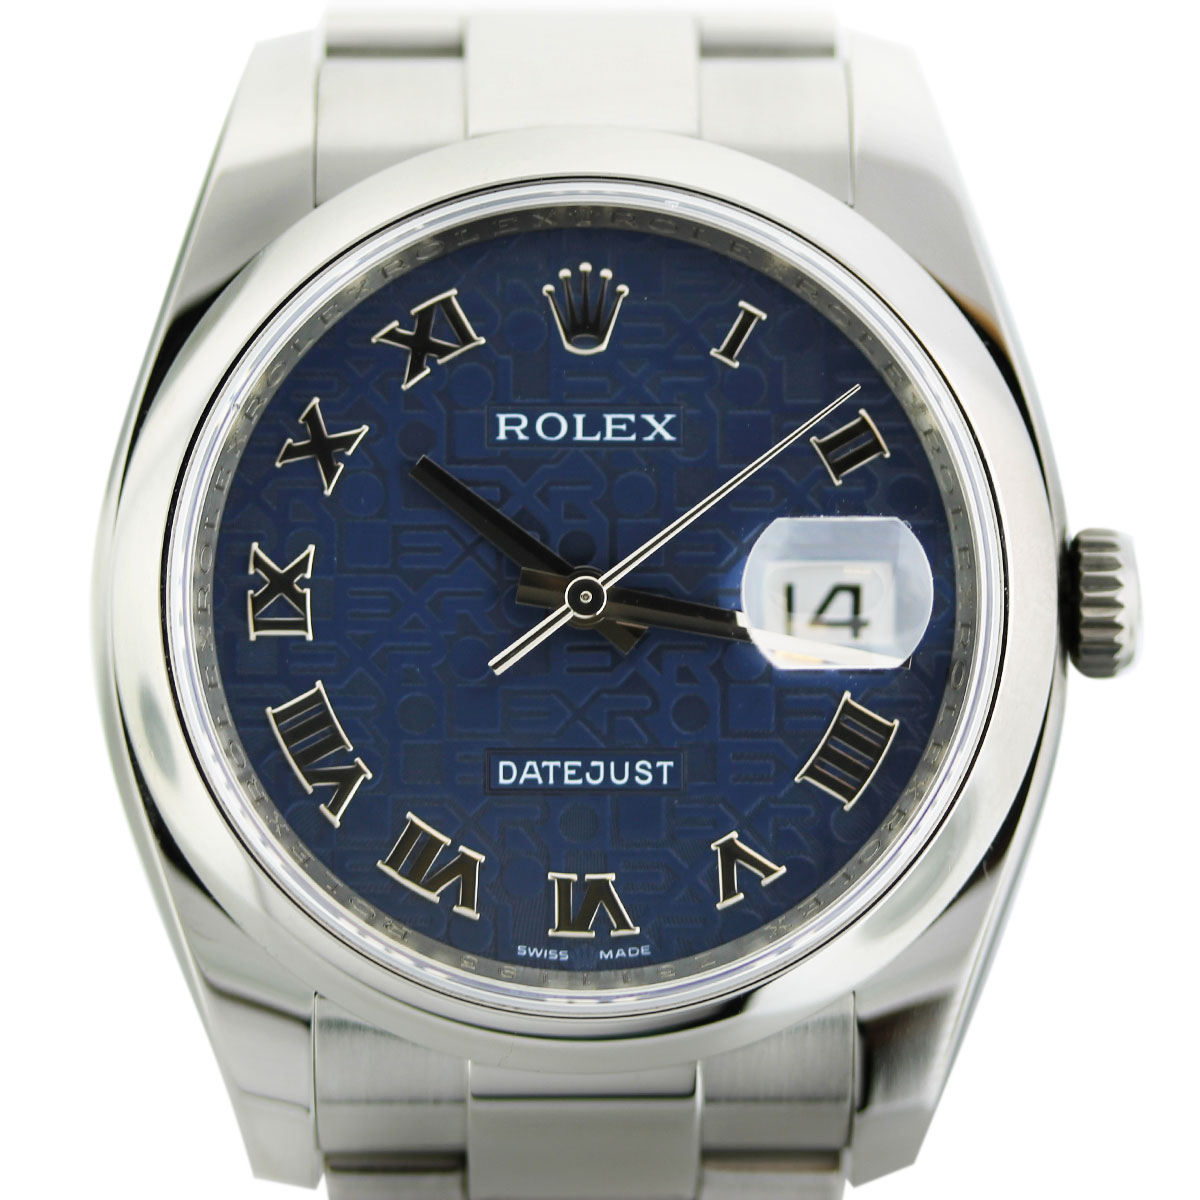 Rolex Datejust 116200 Stainless Steel Blue Roman Dial Watch